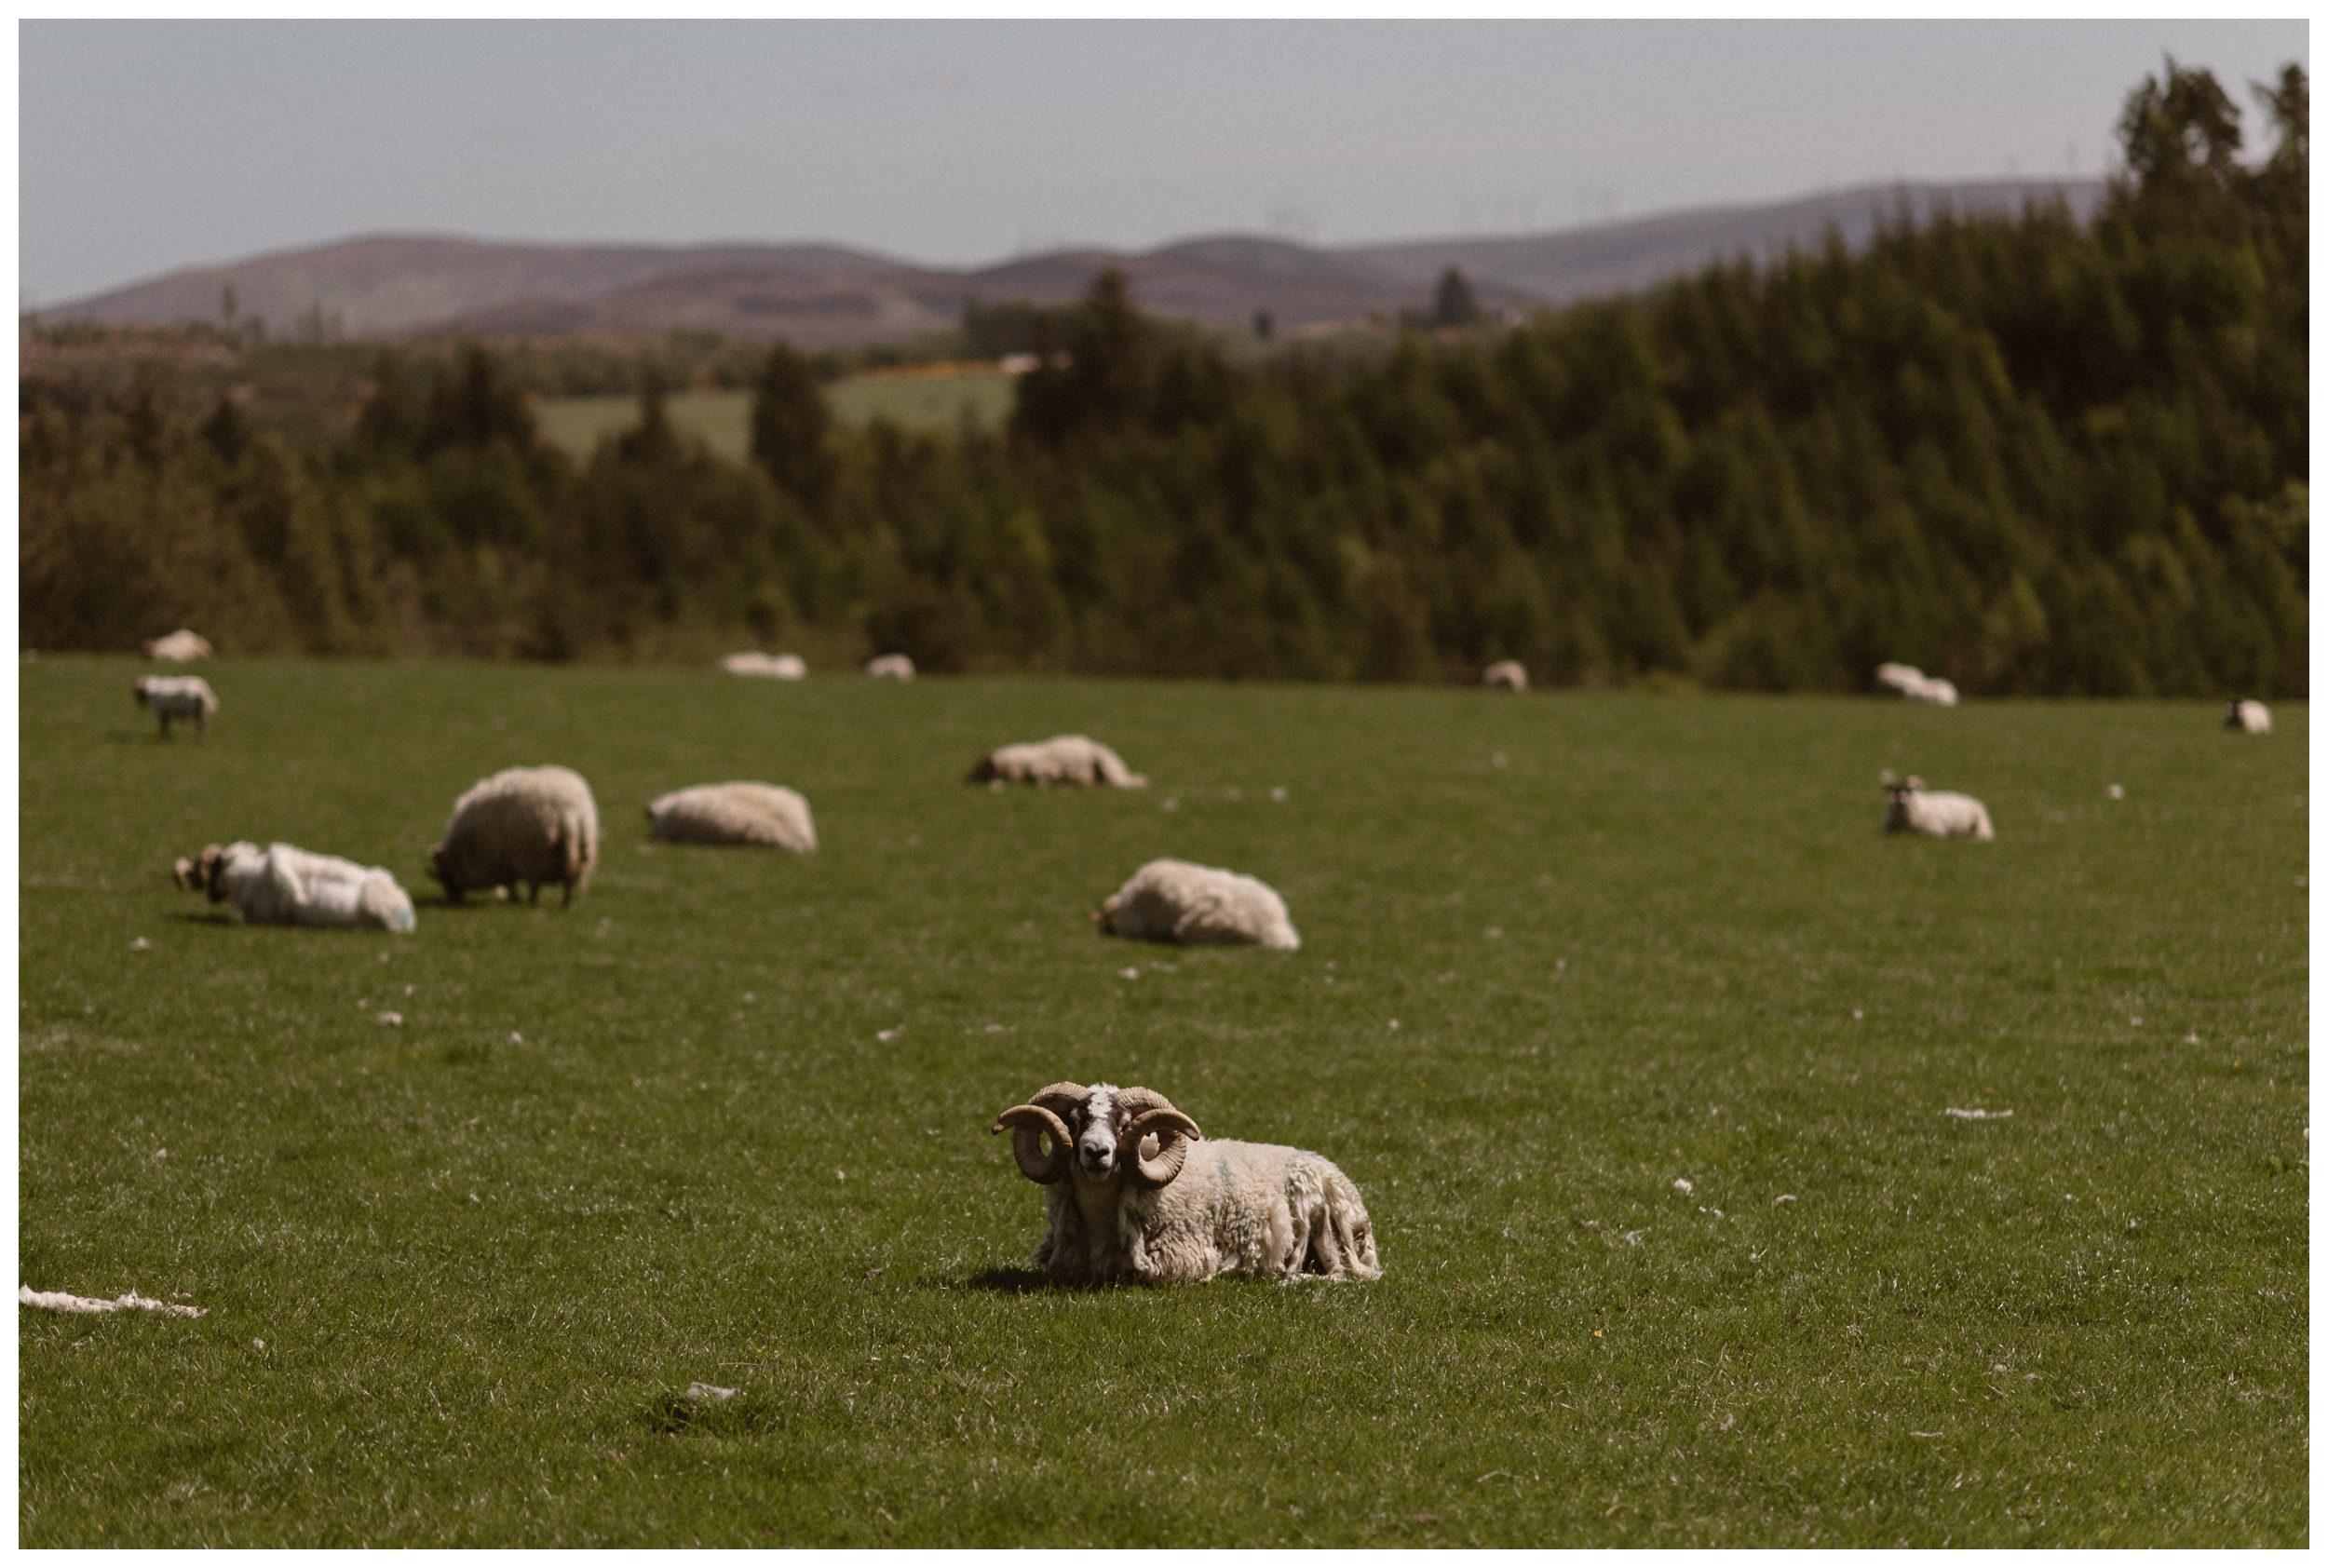 The fields around Loch Ness in the Scottish Highlands are full of sheep. Photo by Maddie Mae, Adventure Instead.